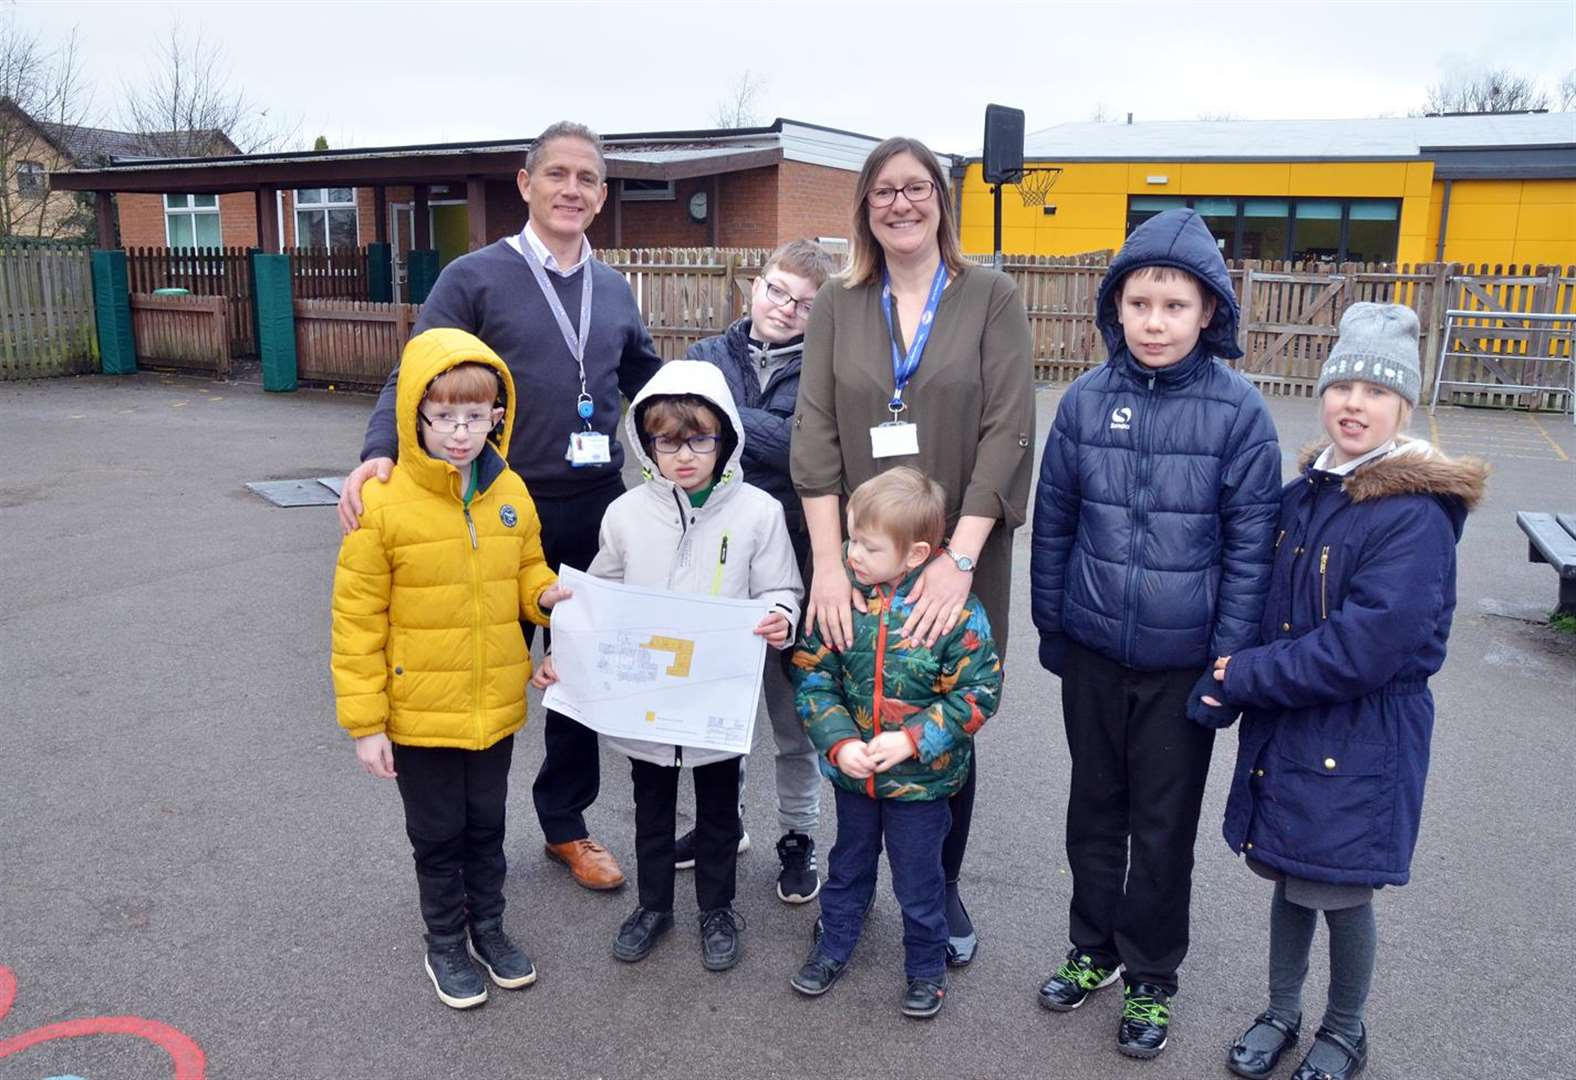 Work to start this spring on five new classrooms at Garth School